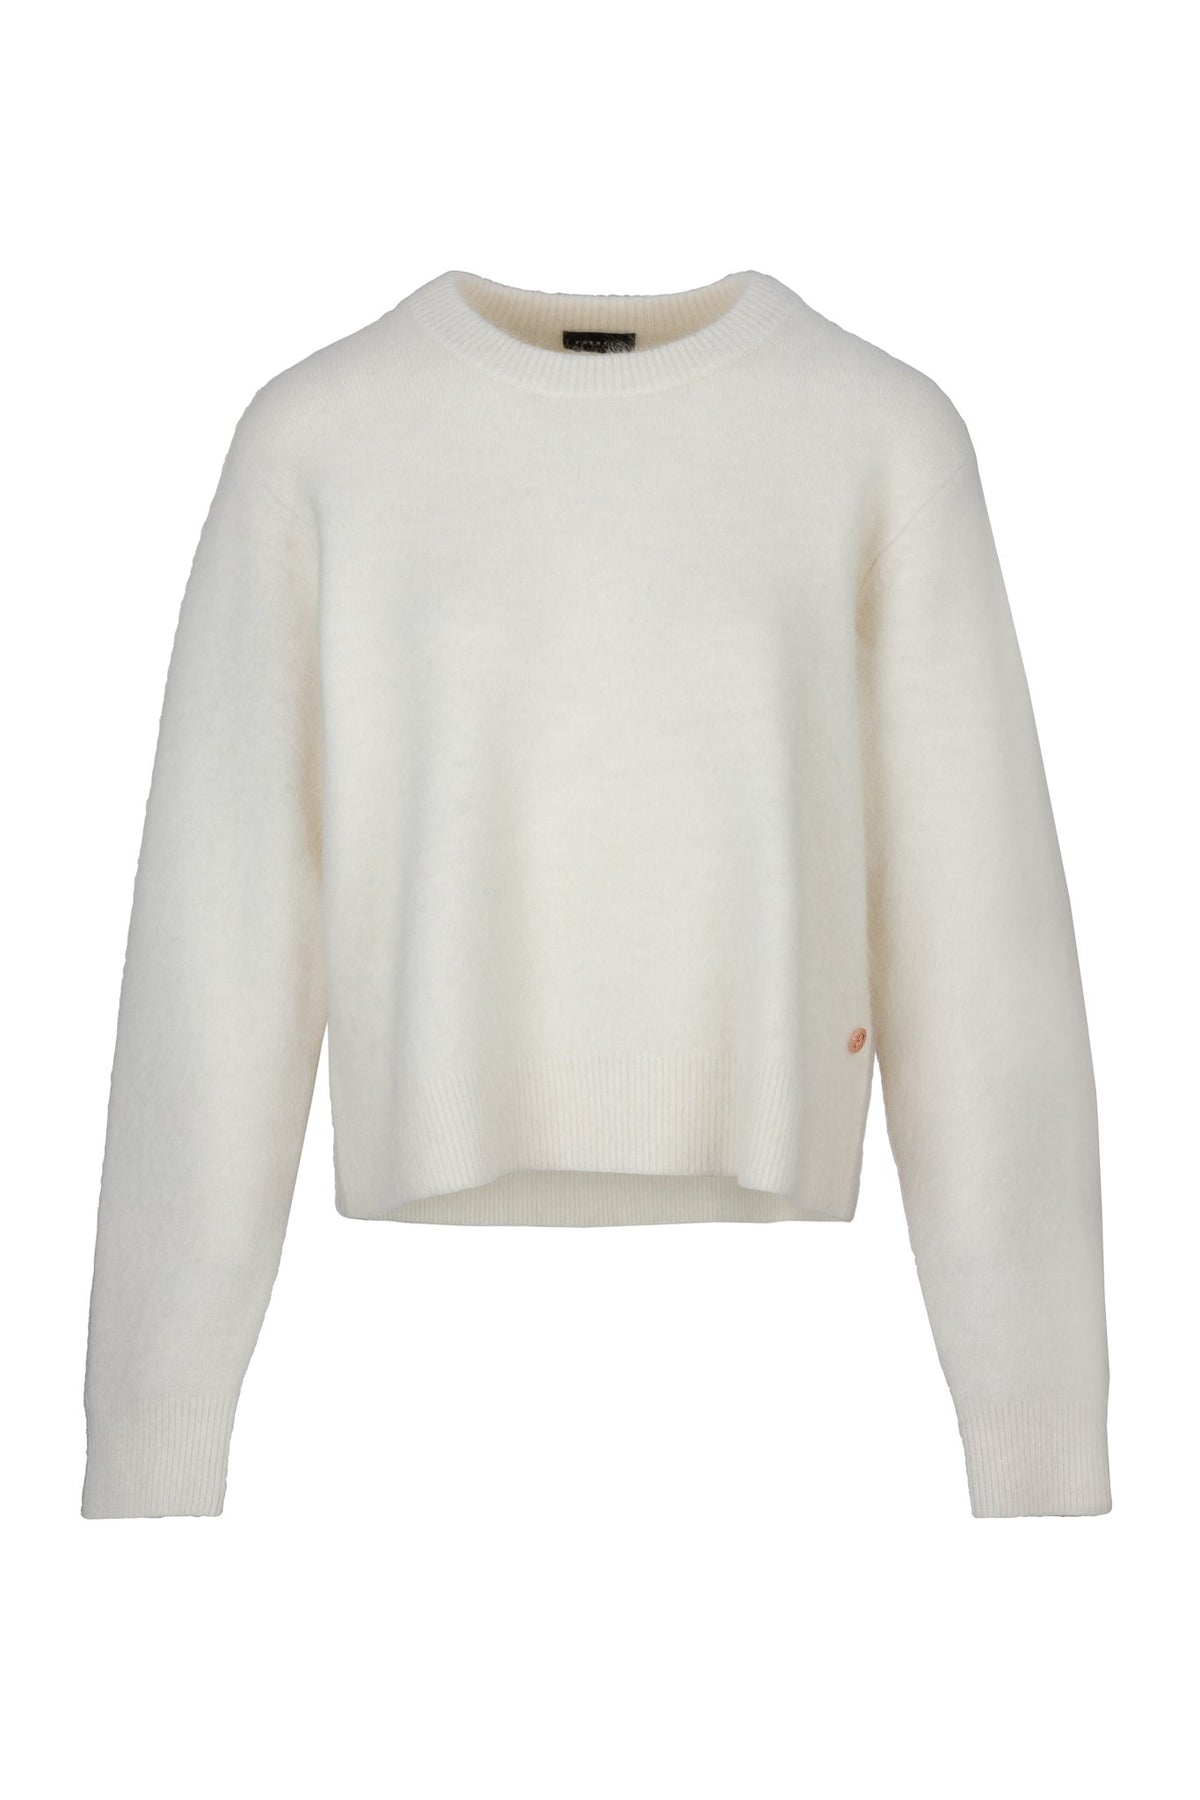 Present | Knitted Top | Off-white